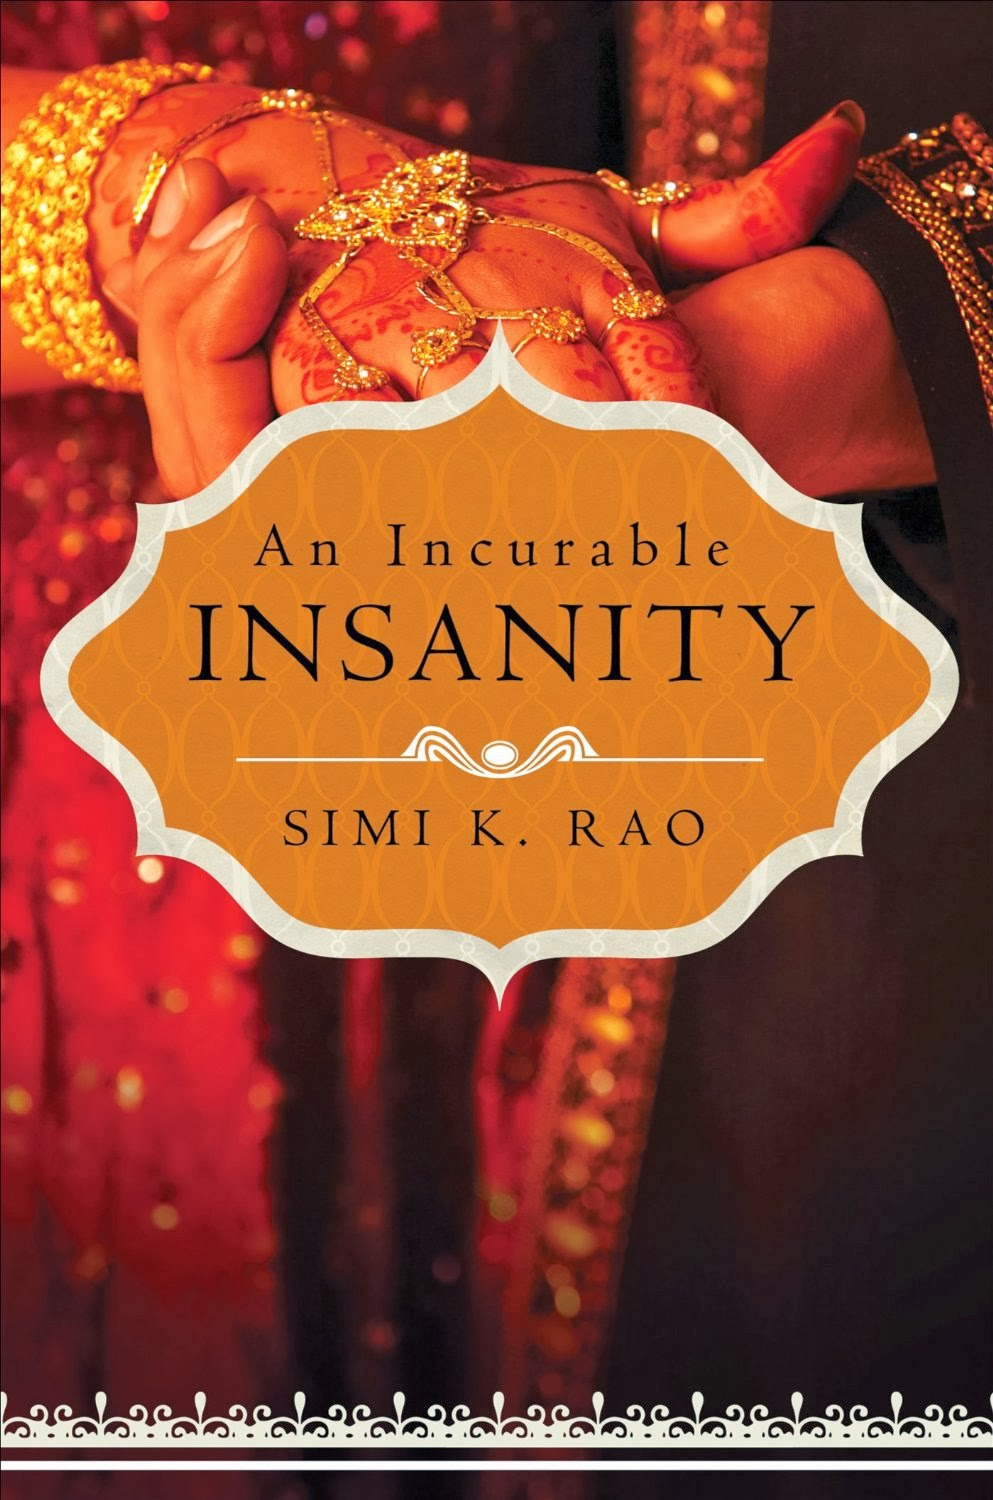 An Incurable Insanity by Simi K. Rao ~ Guest Post and Giveaway